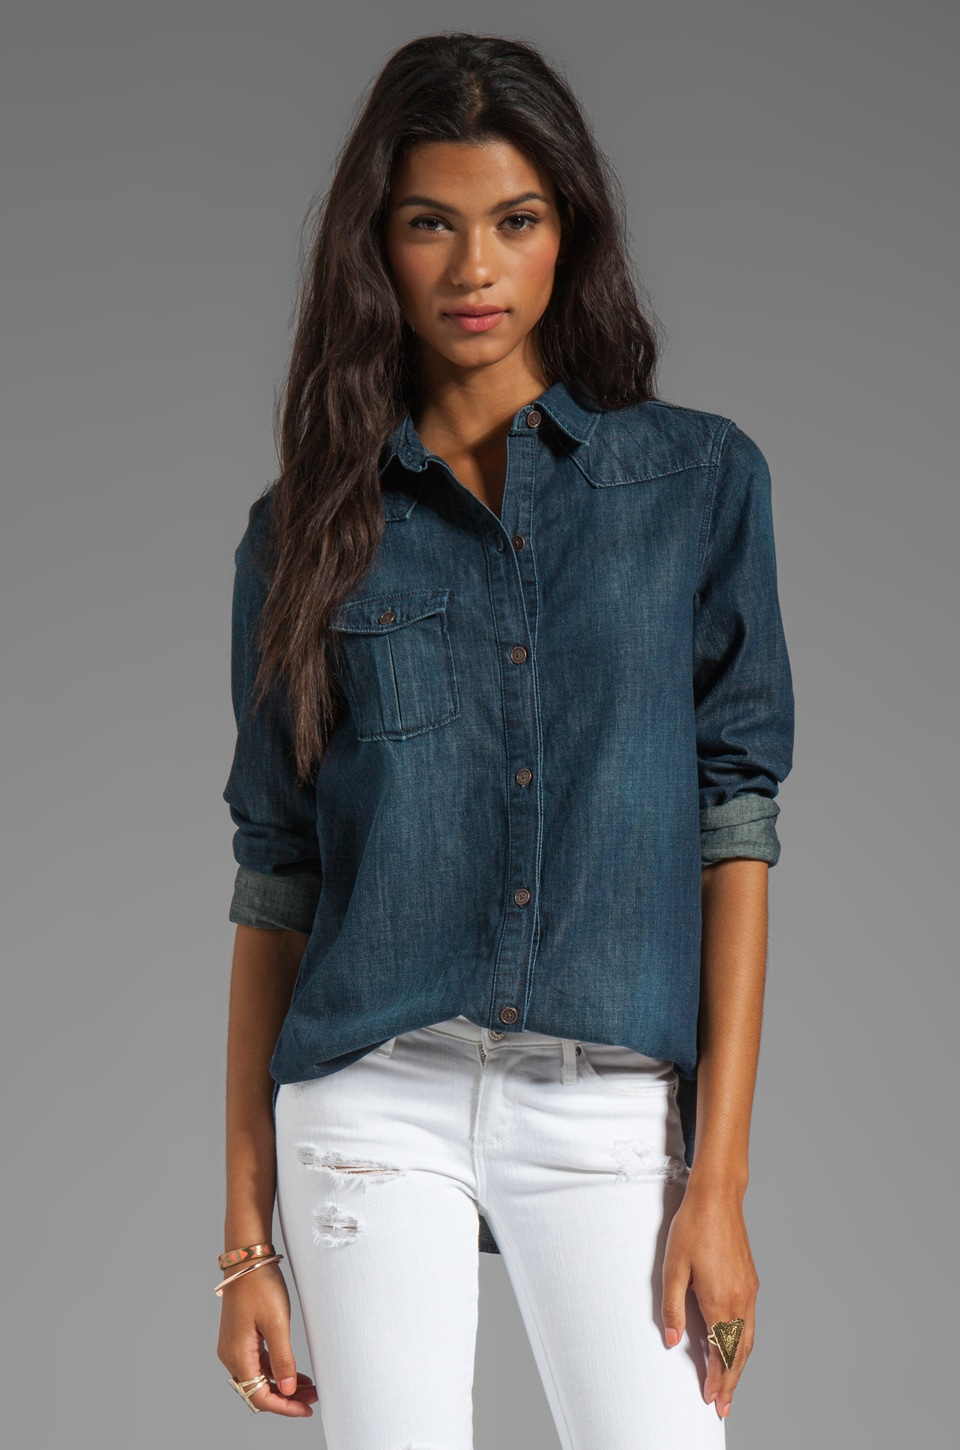 Paige Denim Brooke Denim Shirt in Wayside